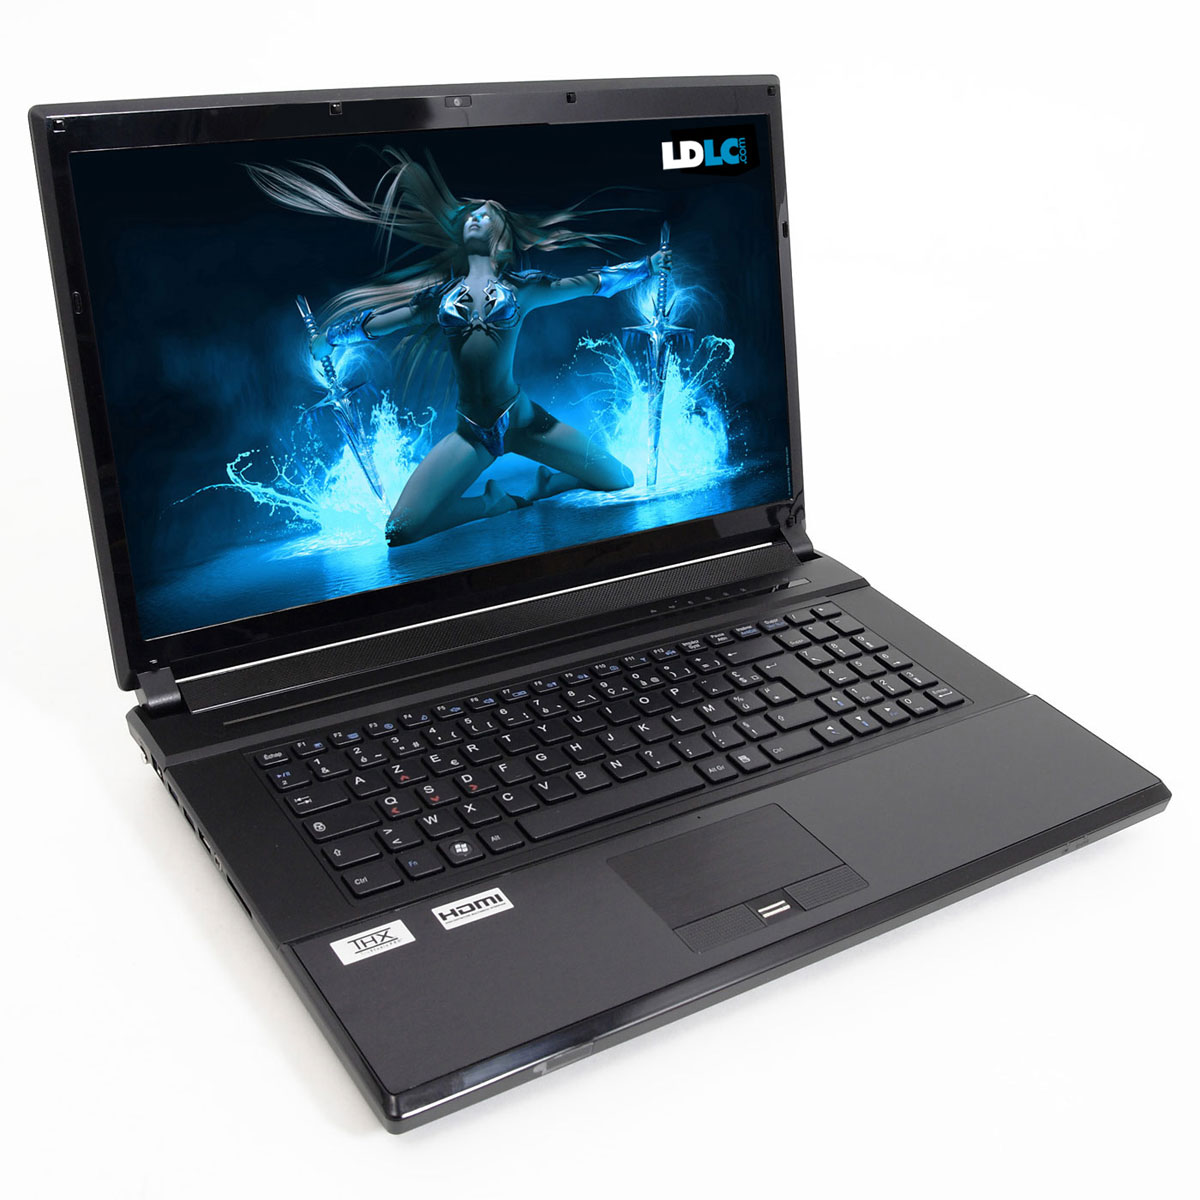 "PC portable LDLC Bellone GA2-I7-16-S5 Intel Core i7-2670QM 16 Go SSD 480 Go 17.3"" LED NVIDIA GeForce GTX 560M Graveur DVD Wi-Fi N/Bluetooth Webcam (sans OS)"